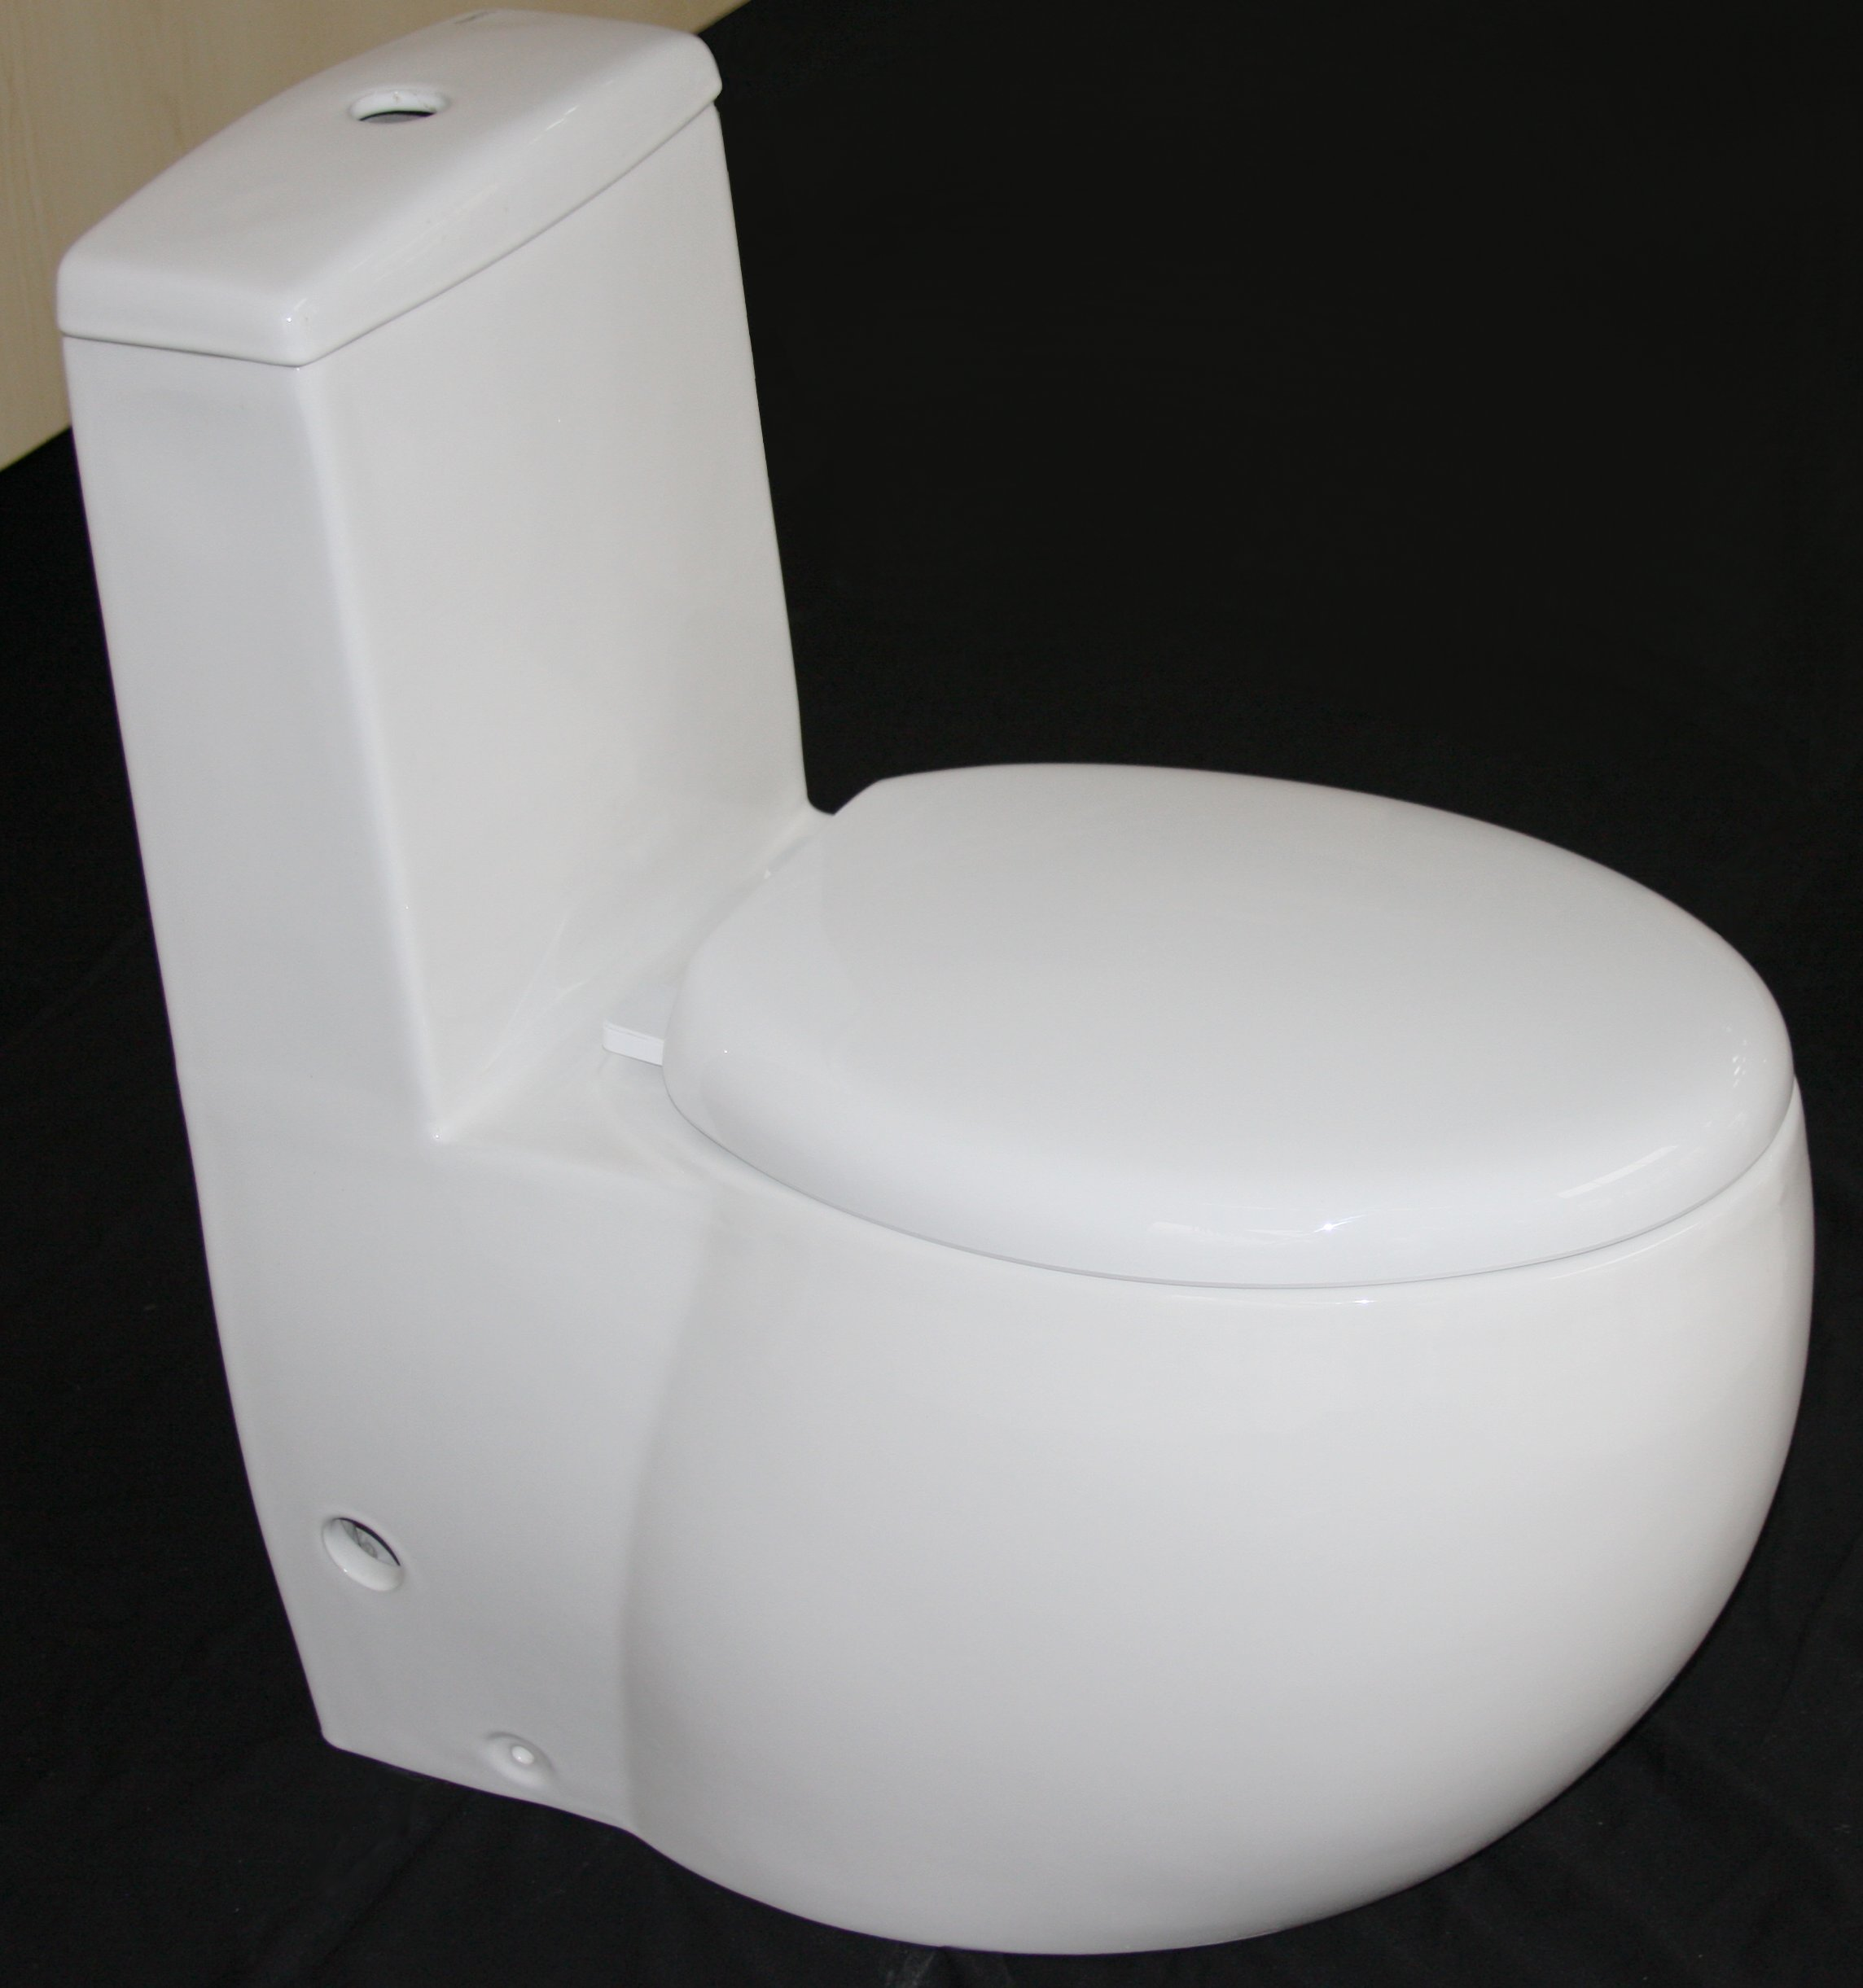 Euroto Luxury Toilet for Bathroom Toilet Bowls, Toilets, and Toilet Seats. Smart Toilet (Compact Elongated, Dual Flush(Siphonic)) by EUROTO (Image #1)